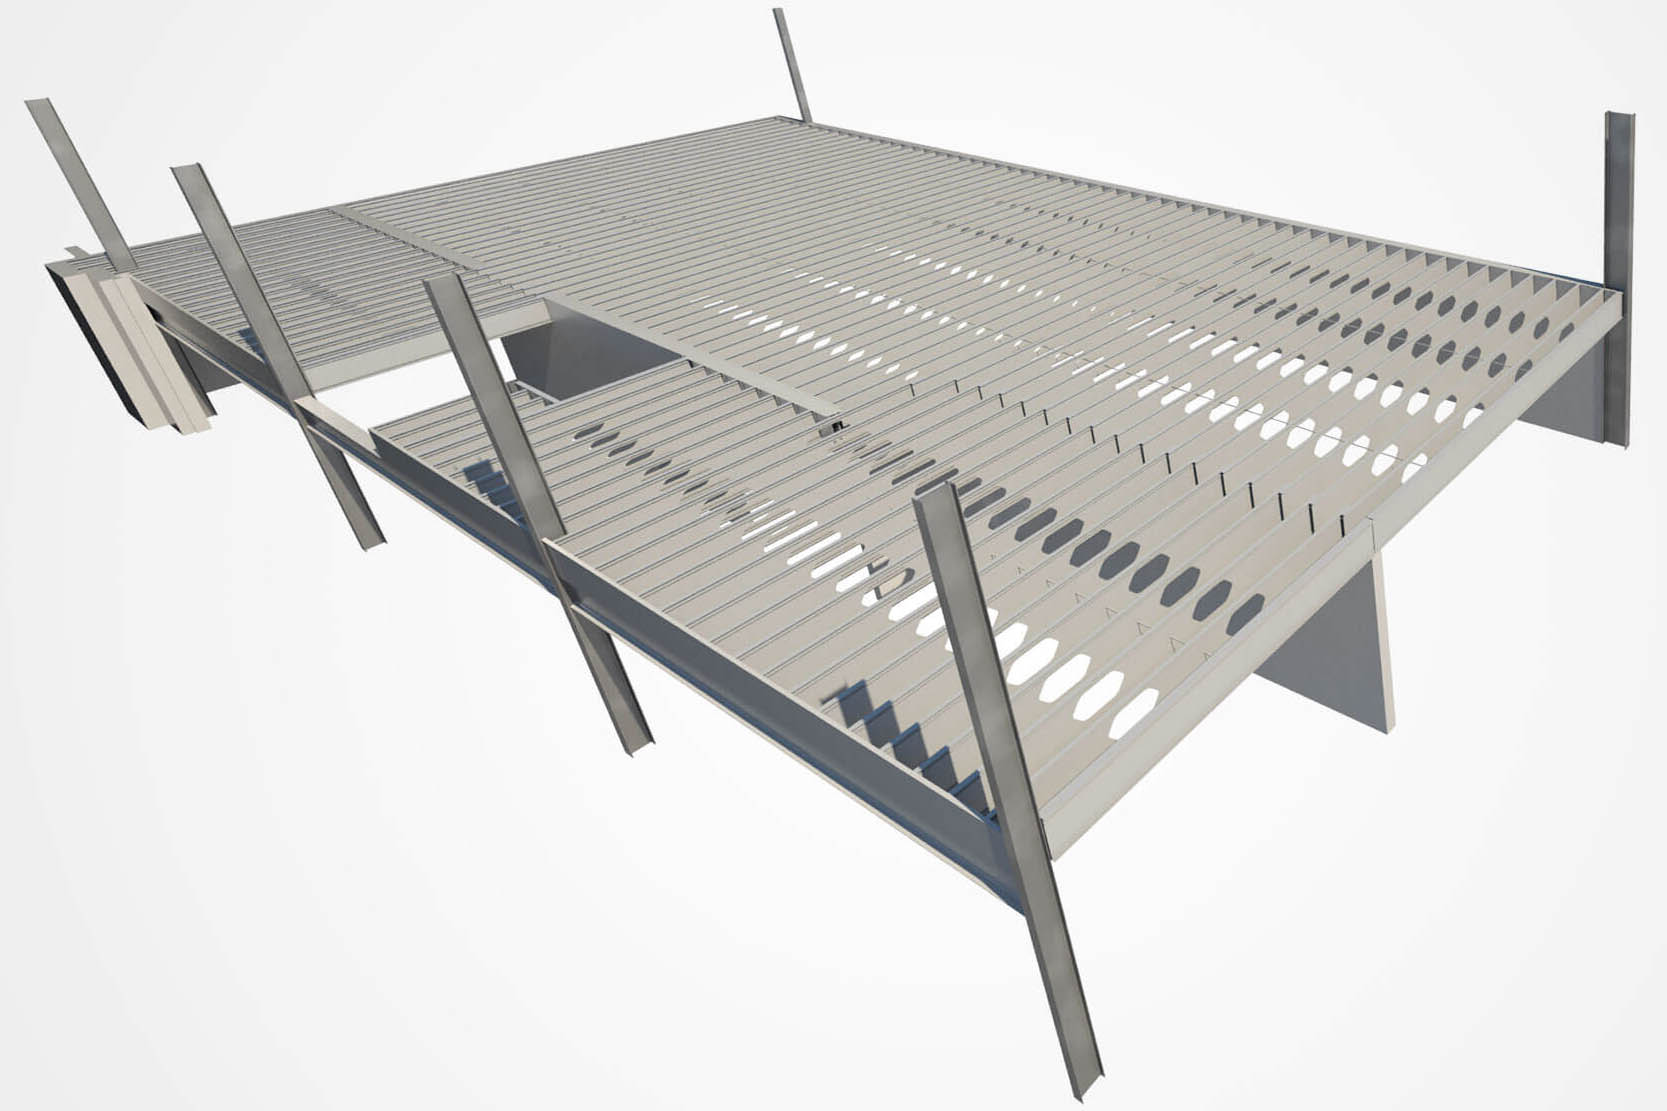 Lightweight Mezzanines Using Cold Formed Steel Ispan Systems